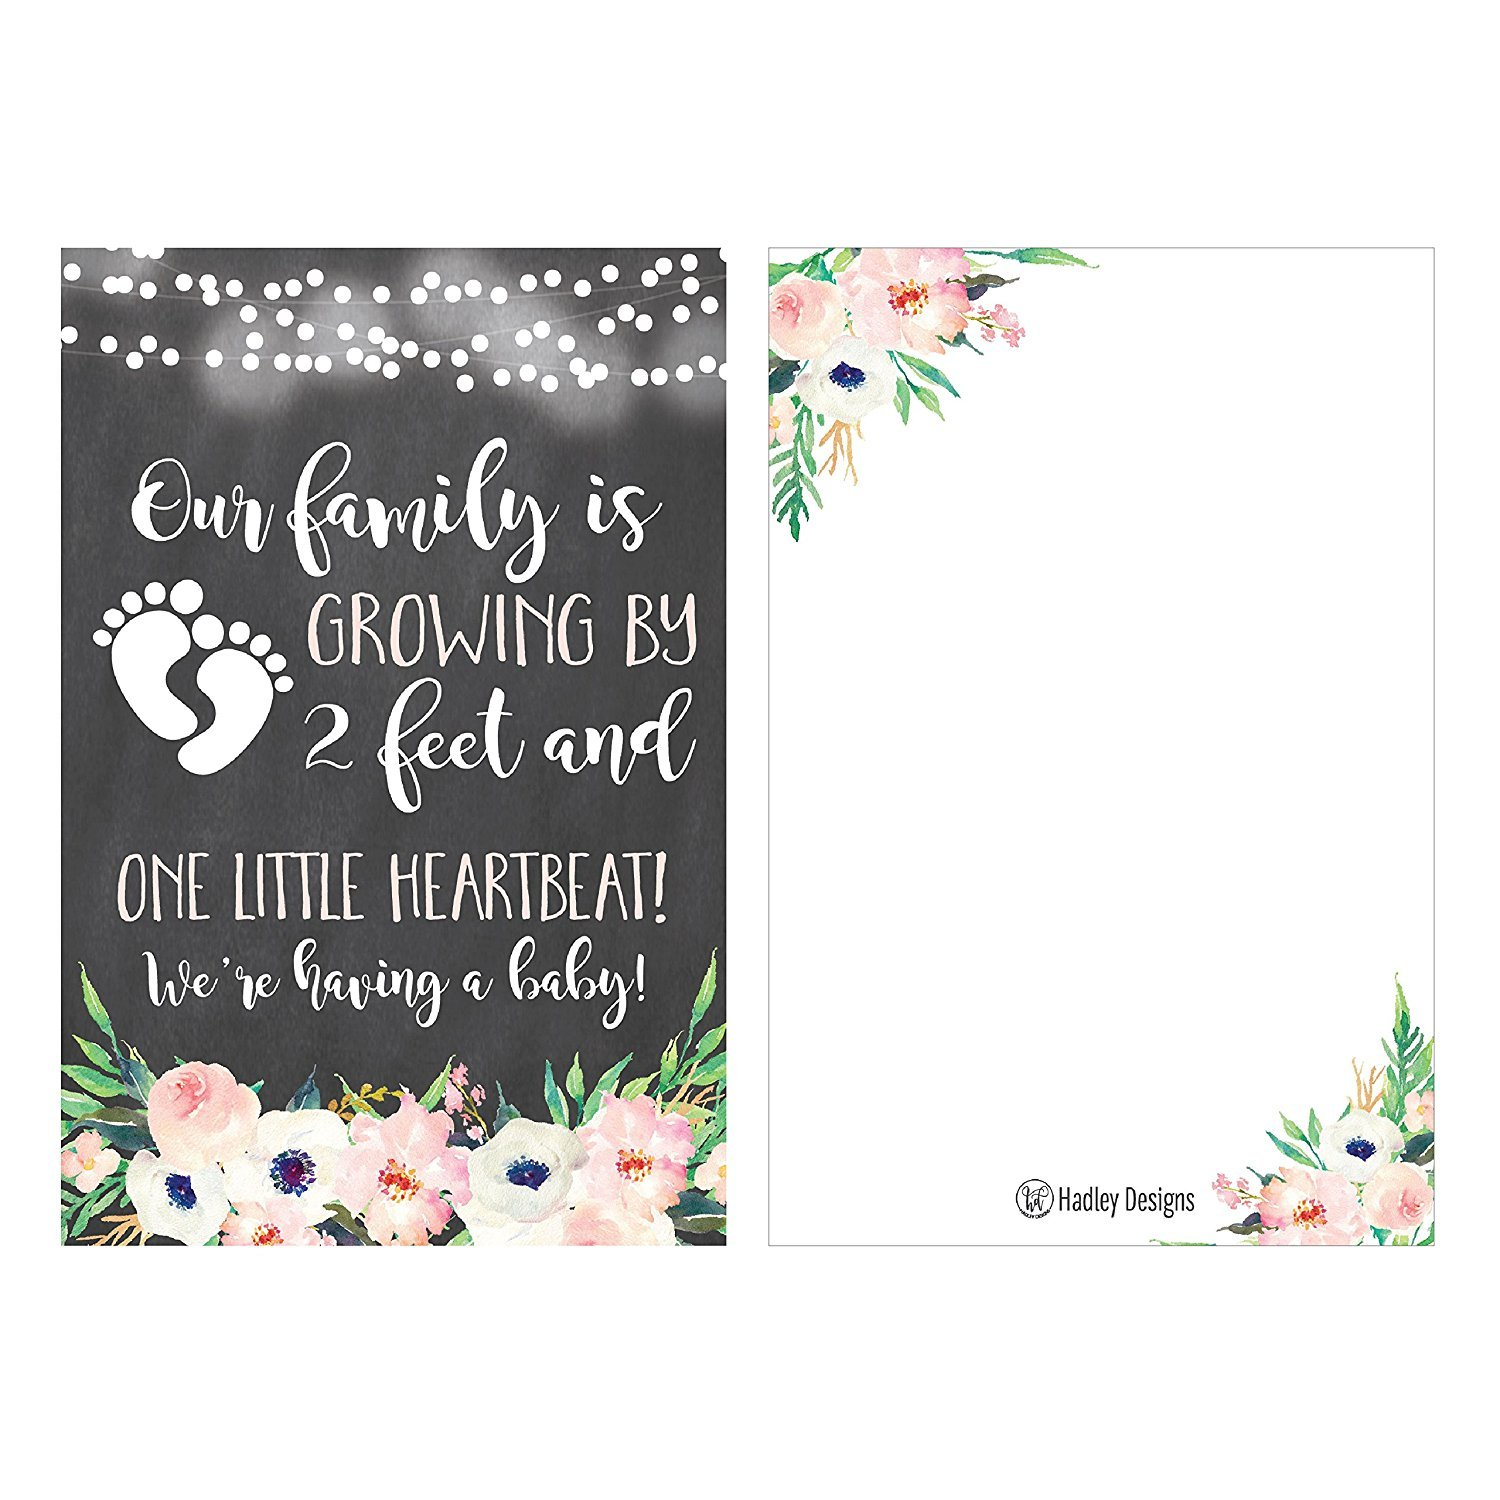 We Have Something to tell you We/'re Having a Baby Card You/'re Going To Be Grandparents Pregnancy Announcement Card We/'re Pregnant Card